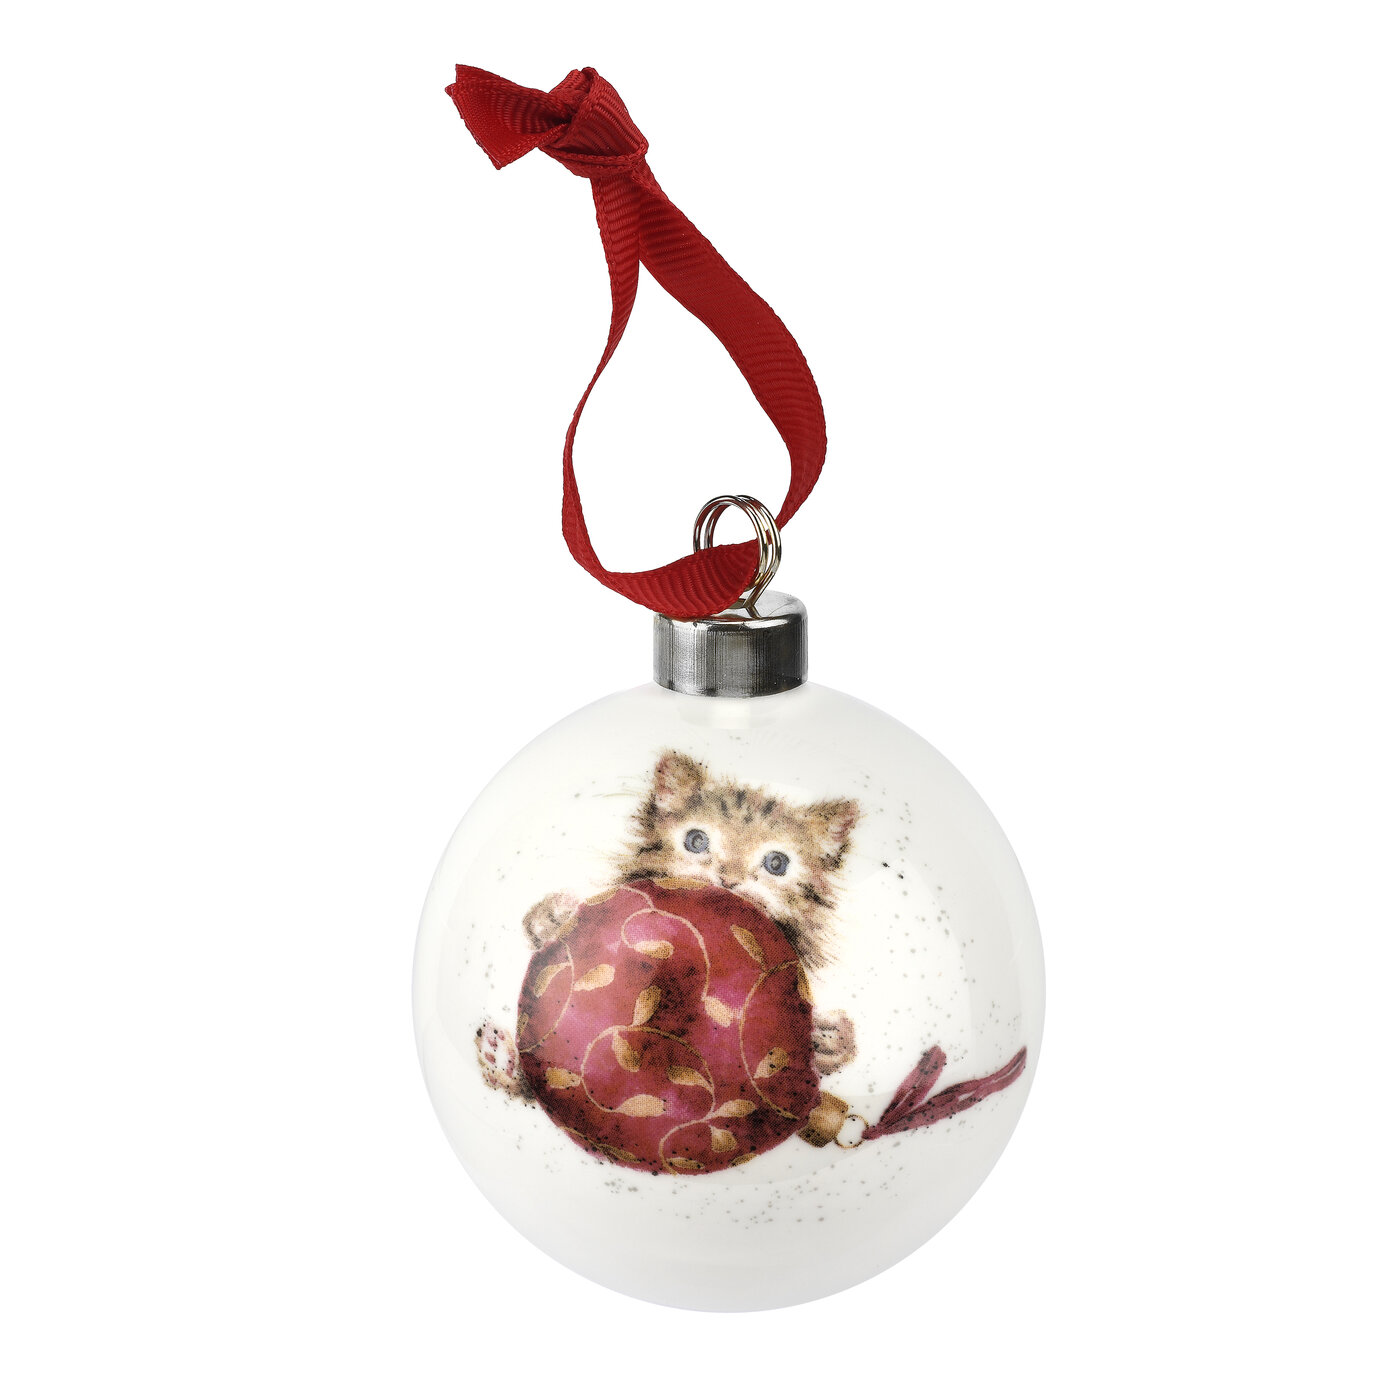 Wrendale Designs Bauble Purrfect Christmas (Kitten) image number 0